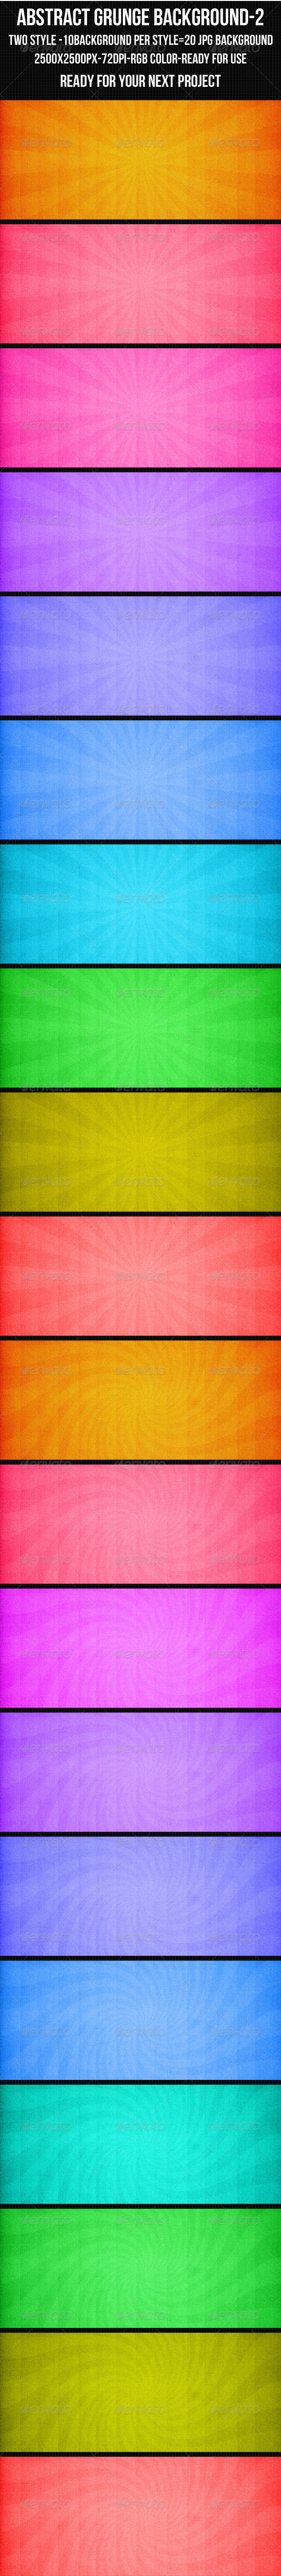 Abstract Grunge Background Set 2 - Abstract Backgrounds